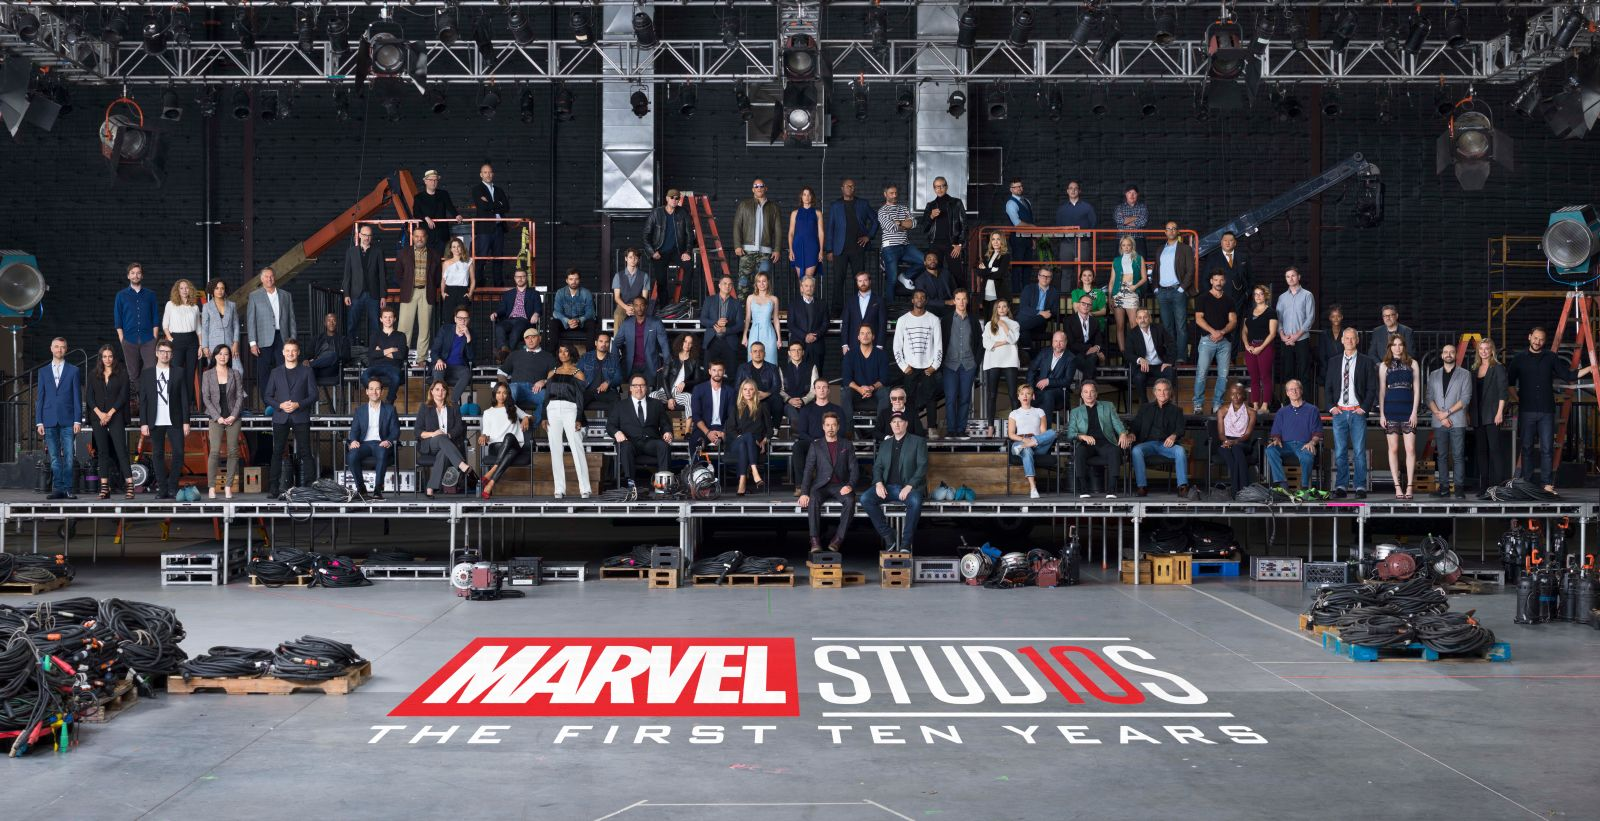 https://i2.wp.com/marvelstudiosnews.com/wp-content/uploads/2018/02/Marvel-Studios-class-photo.jpg?quality=80&strip=info&ssl=1&w=800&zoom=2